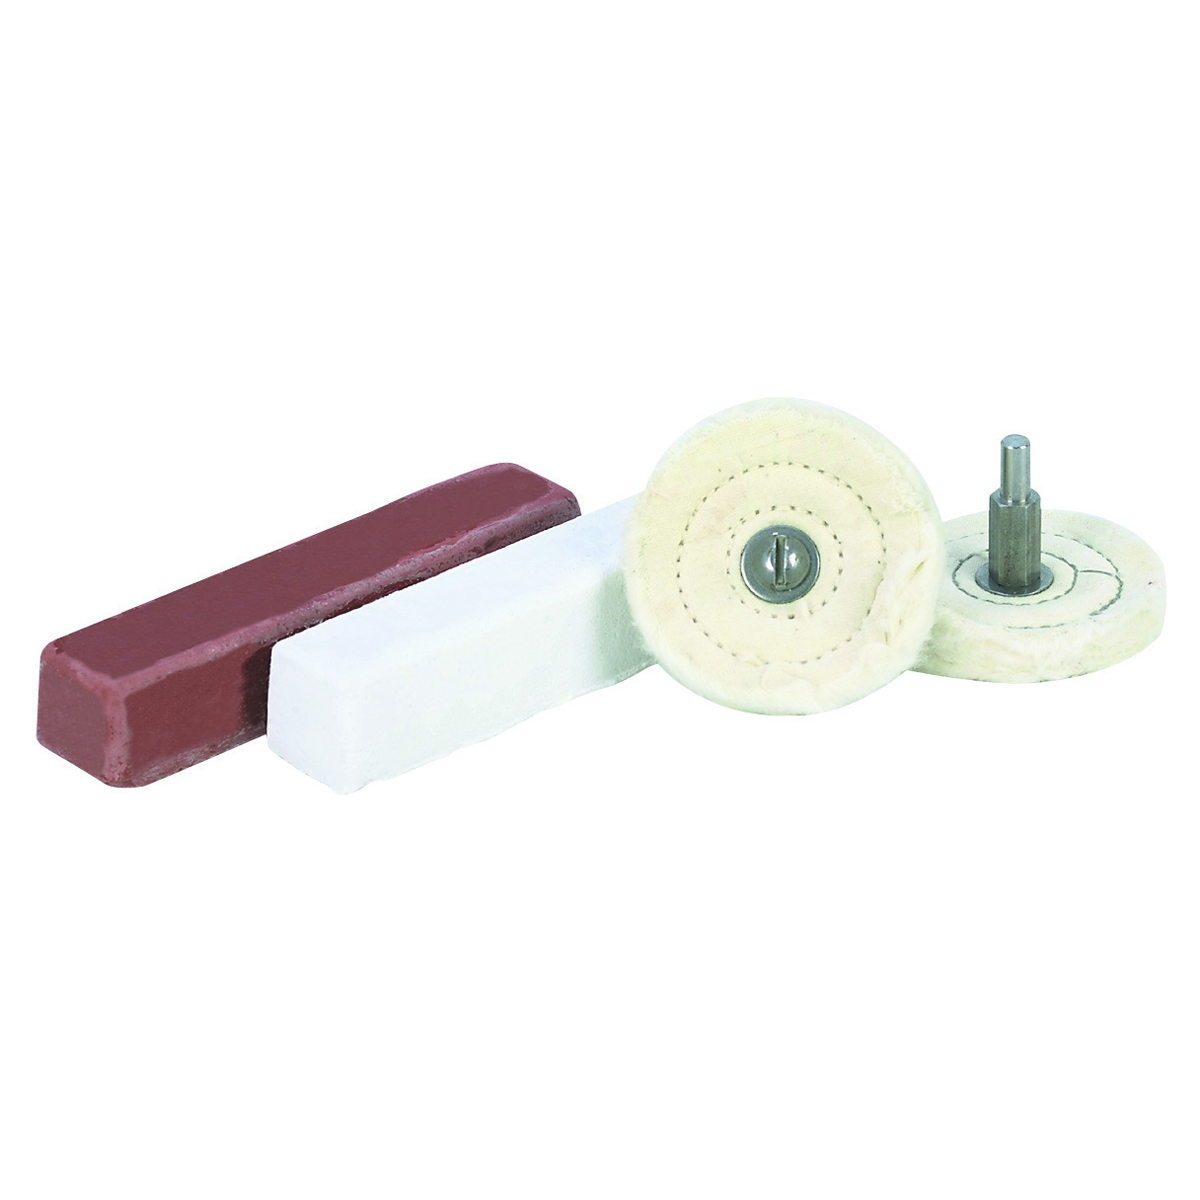 4 Piece Buffing Kit